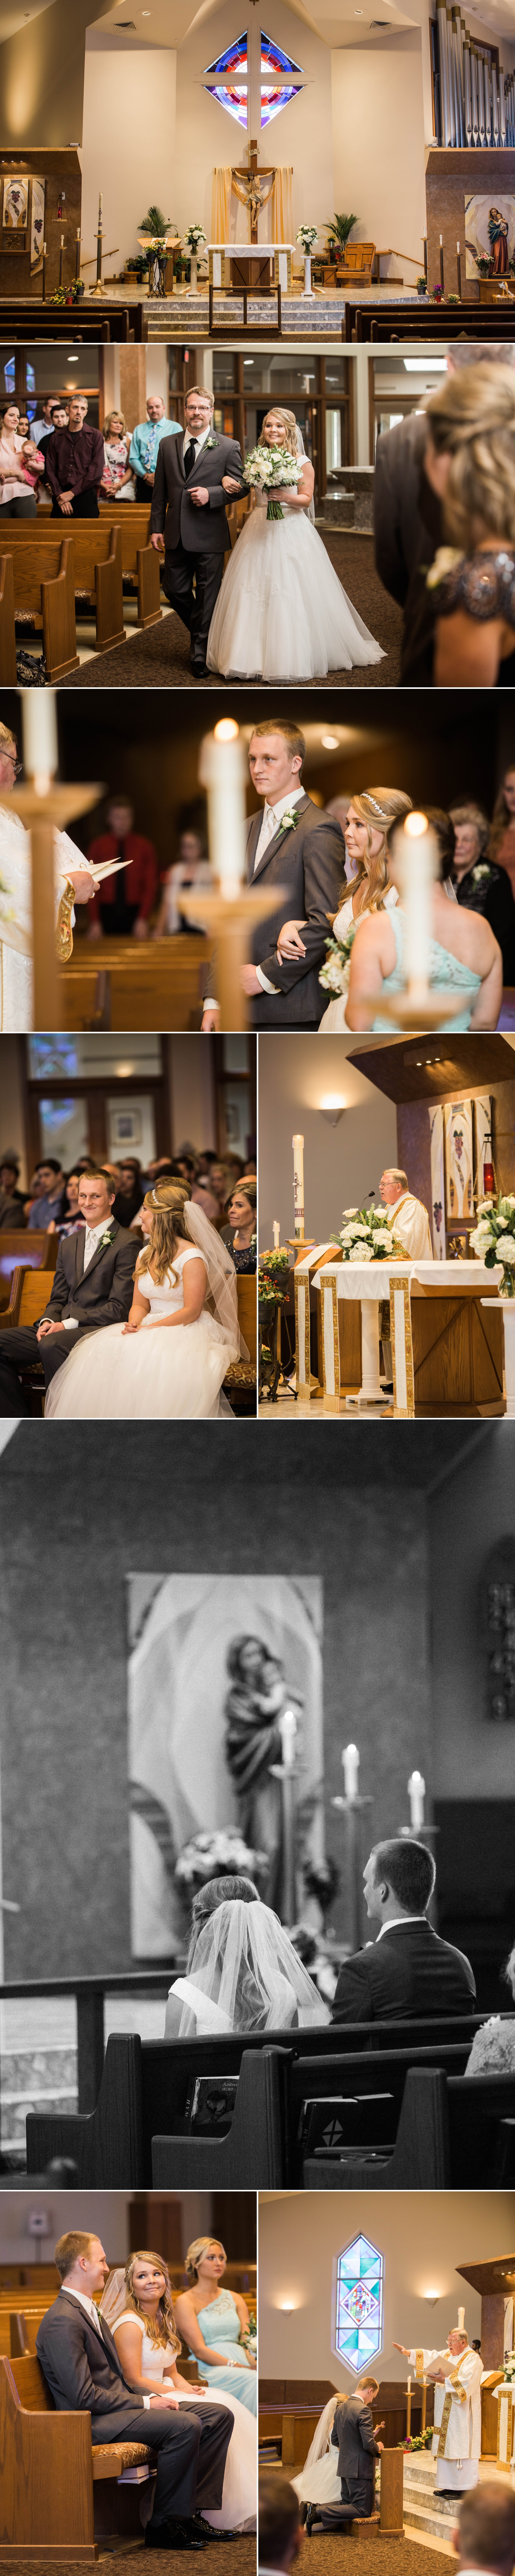 fort wayne - ceremony - wedding - church - bride - groom